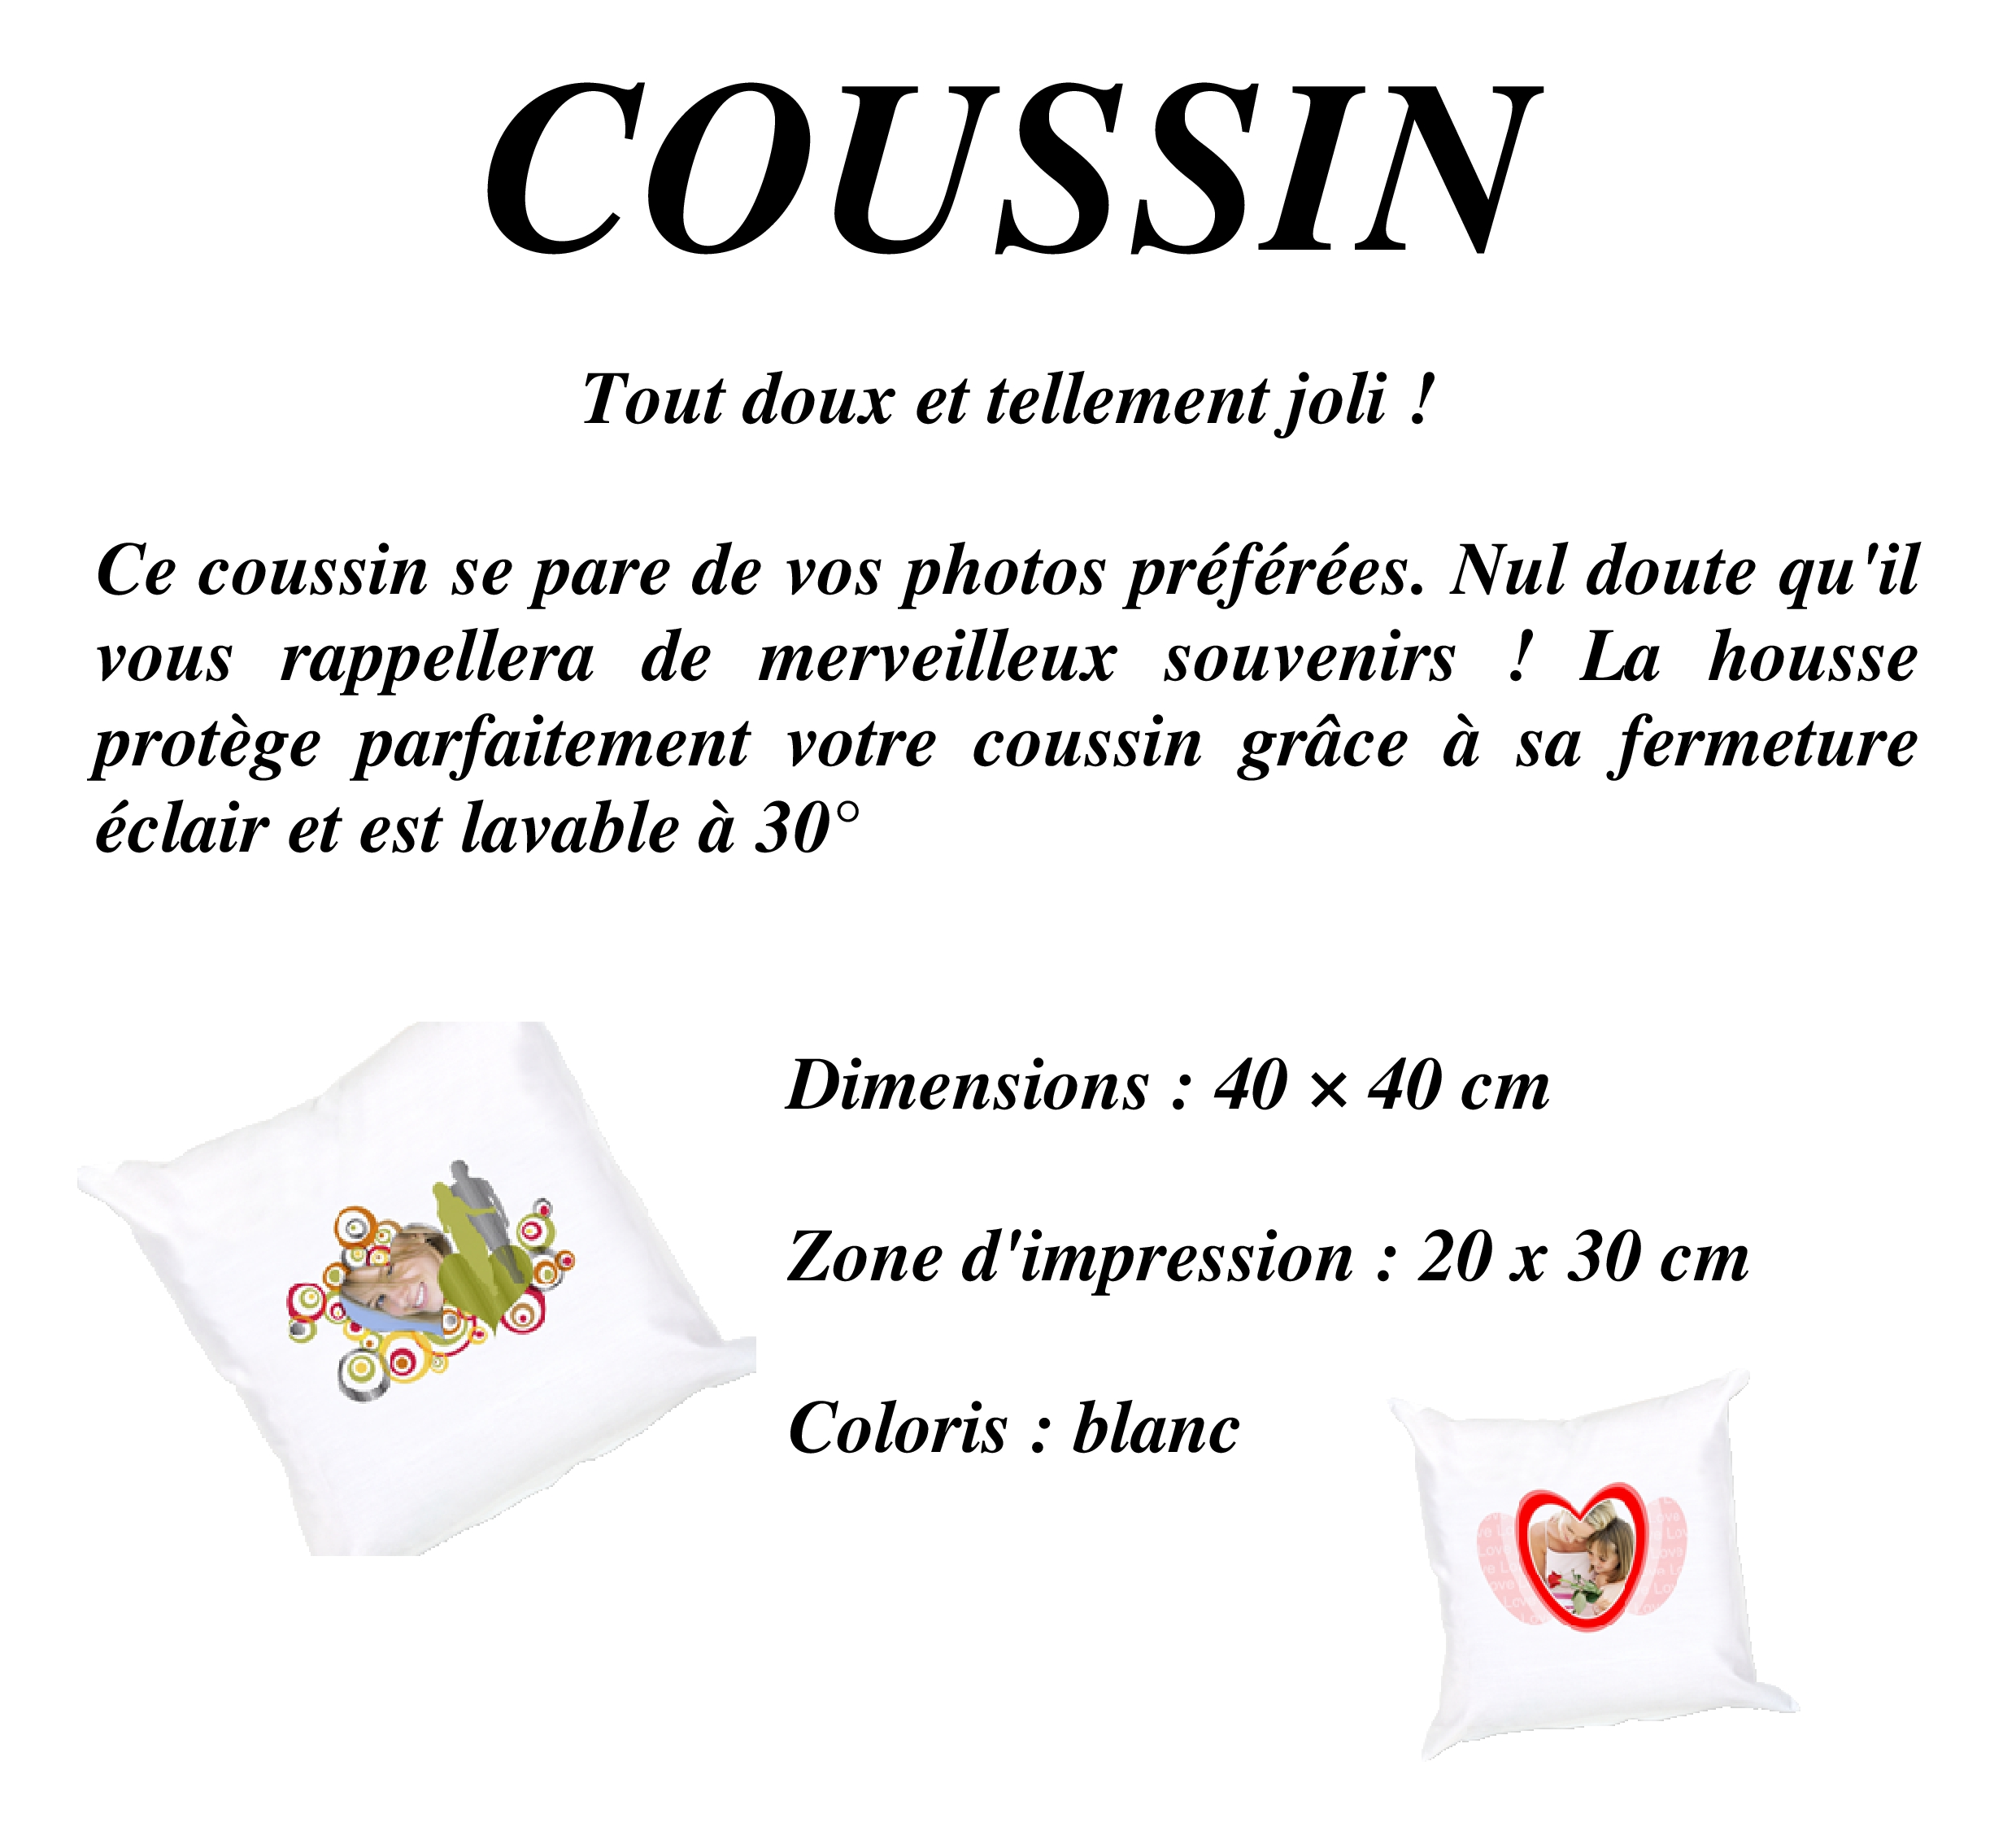 04 Coussin 02